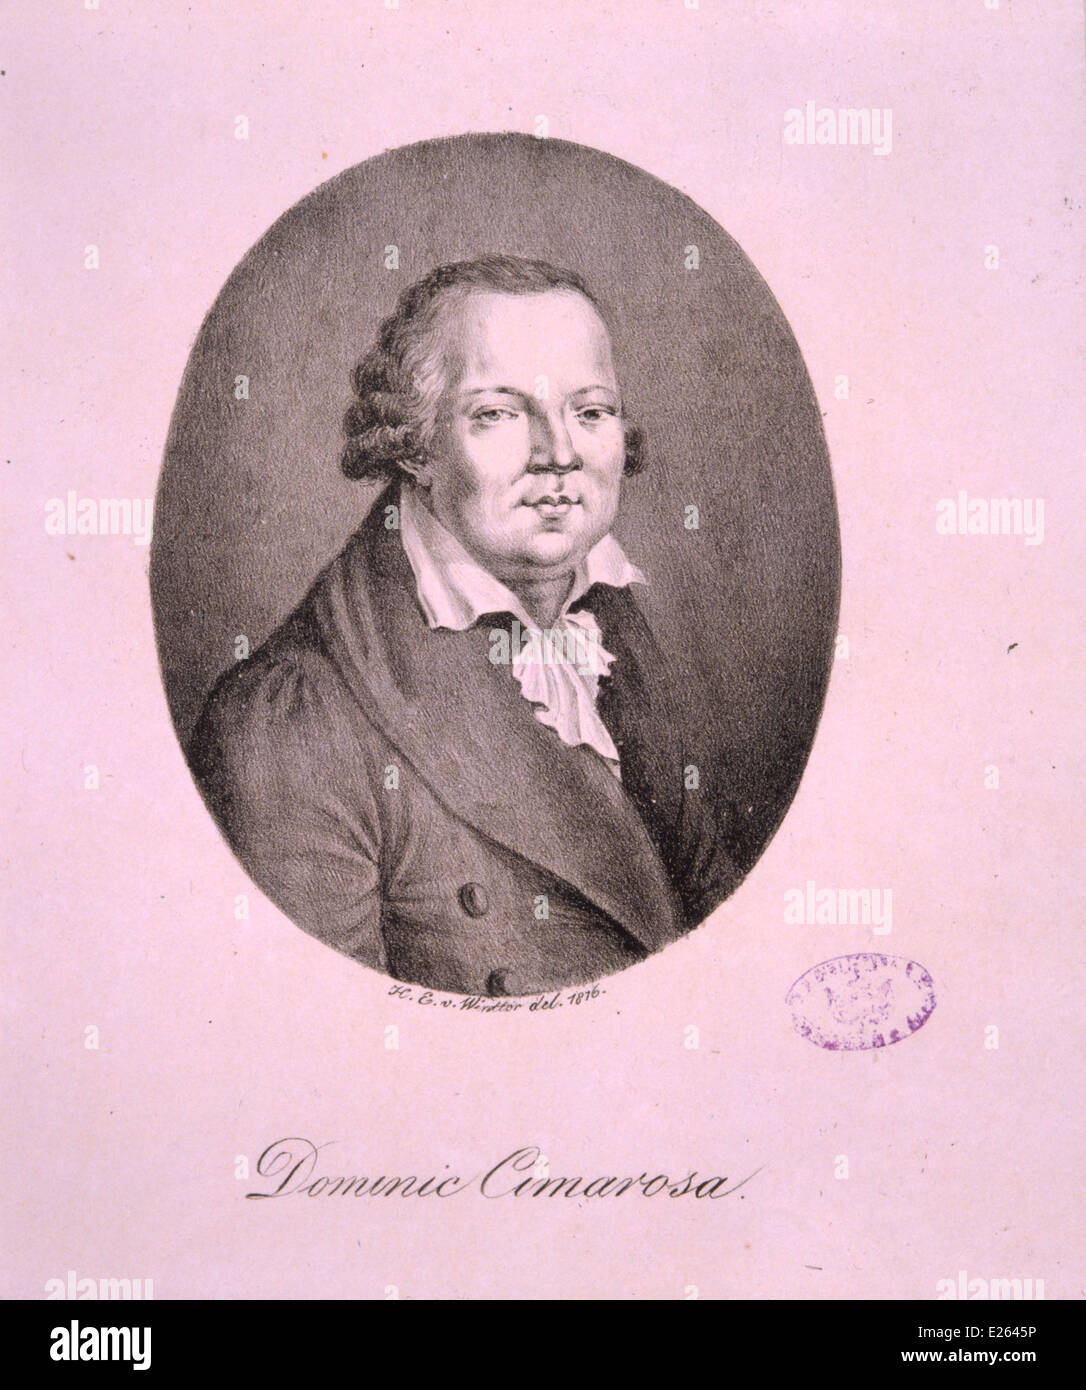 Domenico Cimarosa,lithography of Heinrich Eduard von Wintter,1816,National Academy of St Cecilia Stock Photo